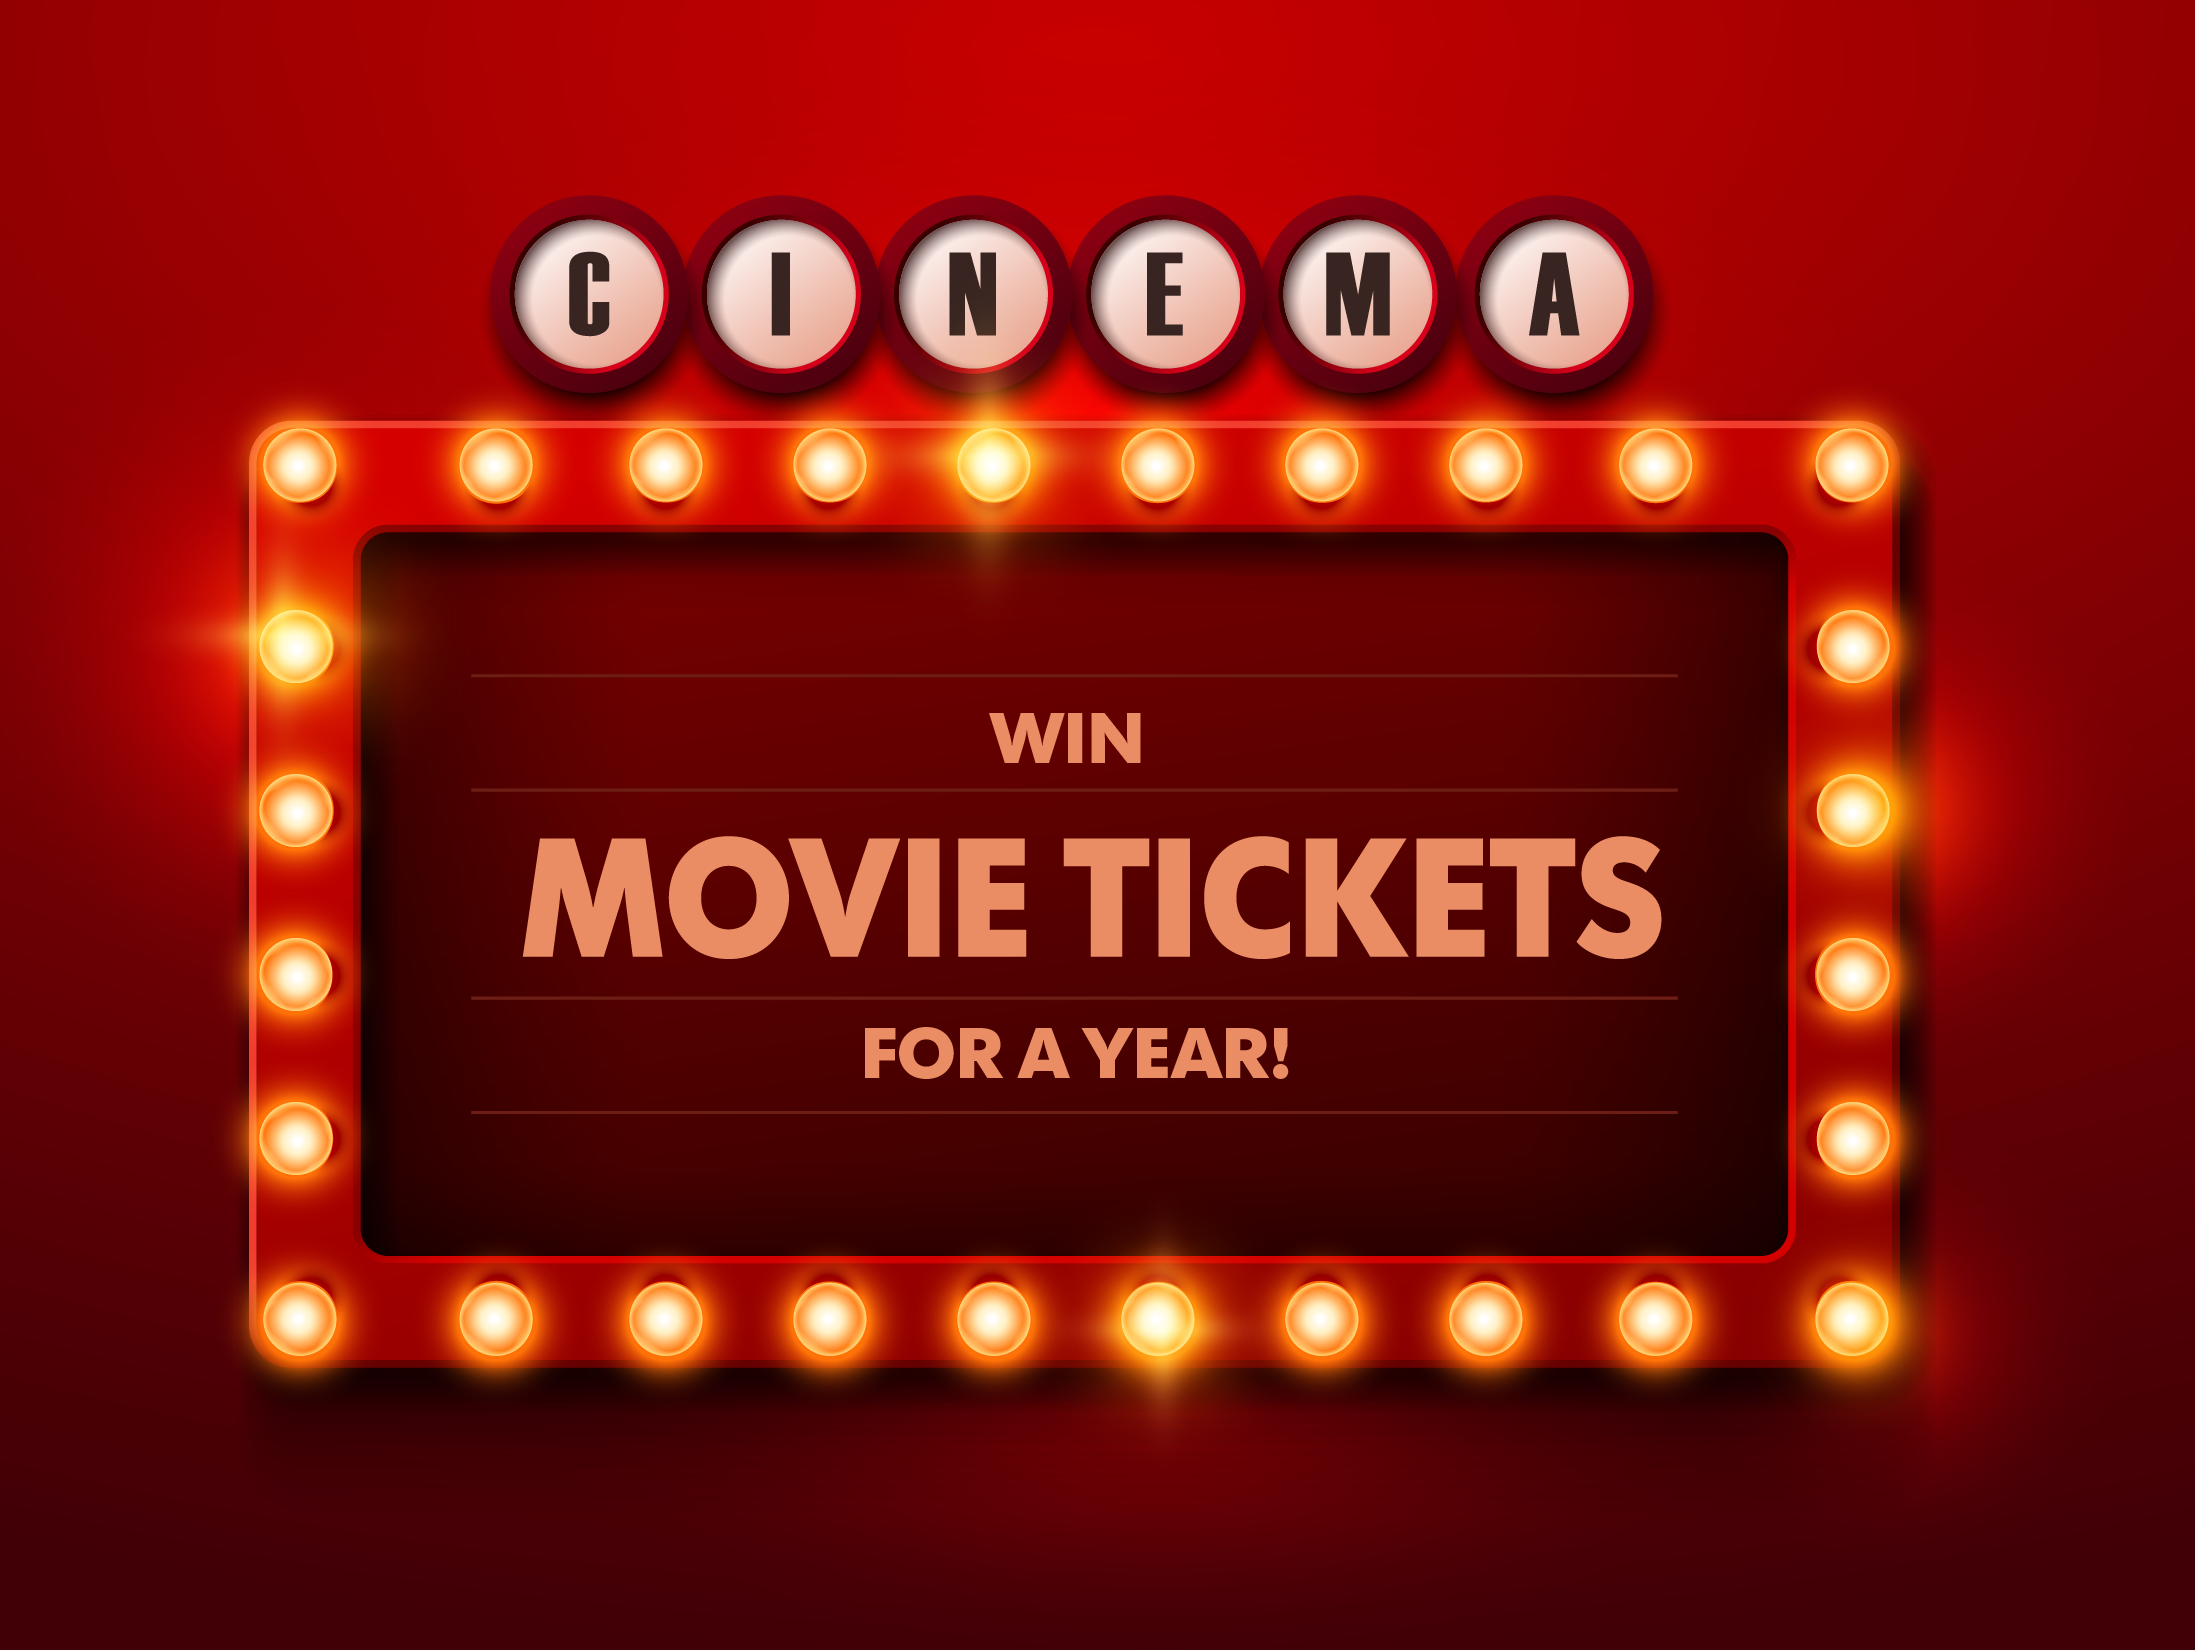 Enjoy dinner and a movie each month of the year! Enter to win this sweet date night package. Enter 1/30-2/25